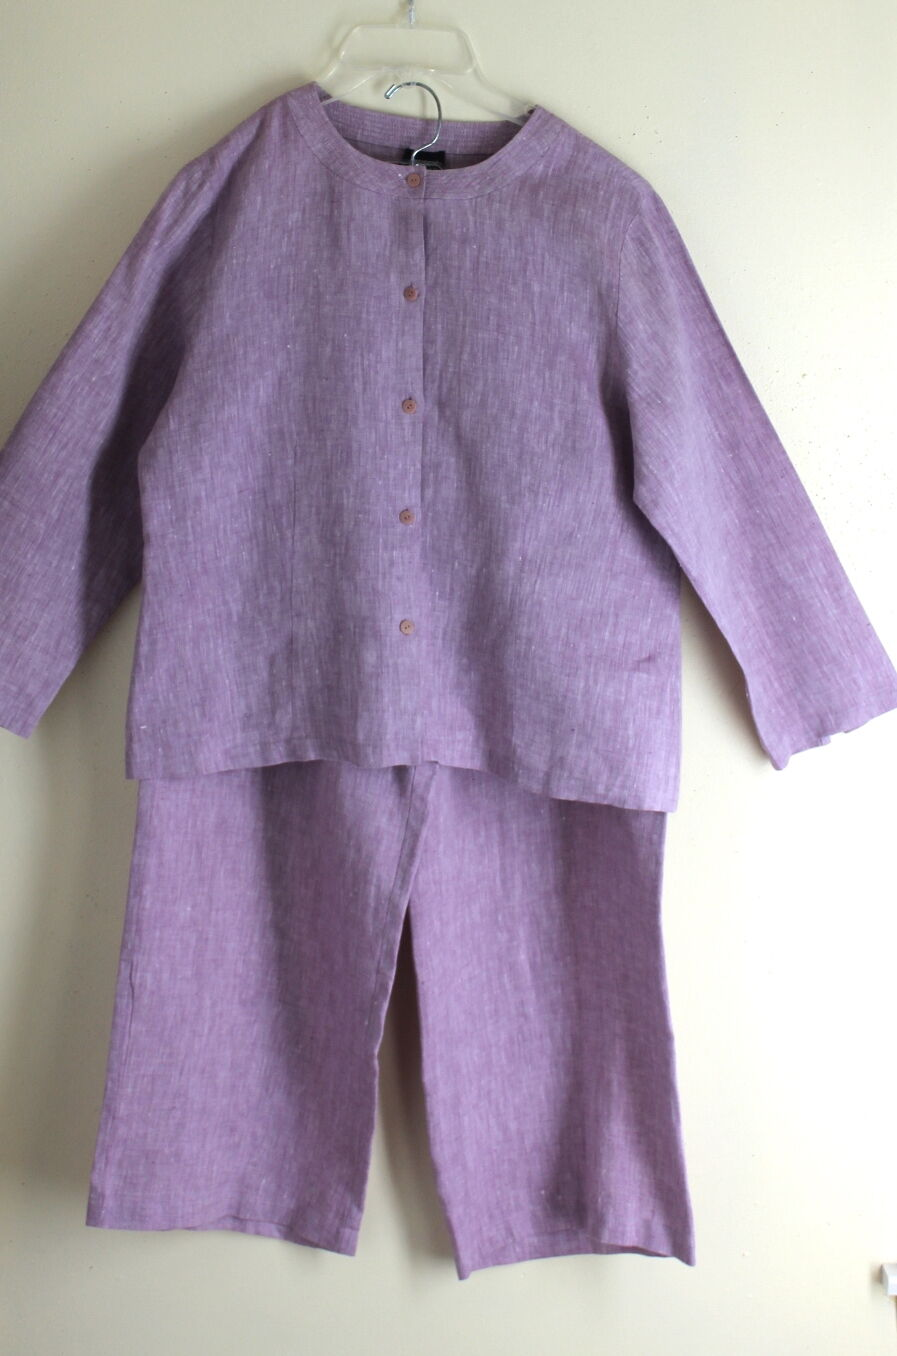 Eileen Fisher Lilac Linen Lovely Blouse Top Japanese Trouser Pants Outfit S M